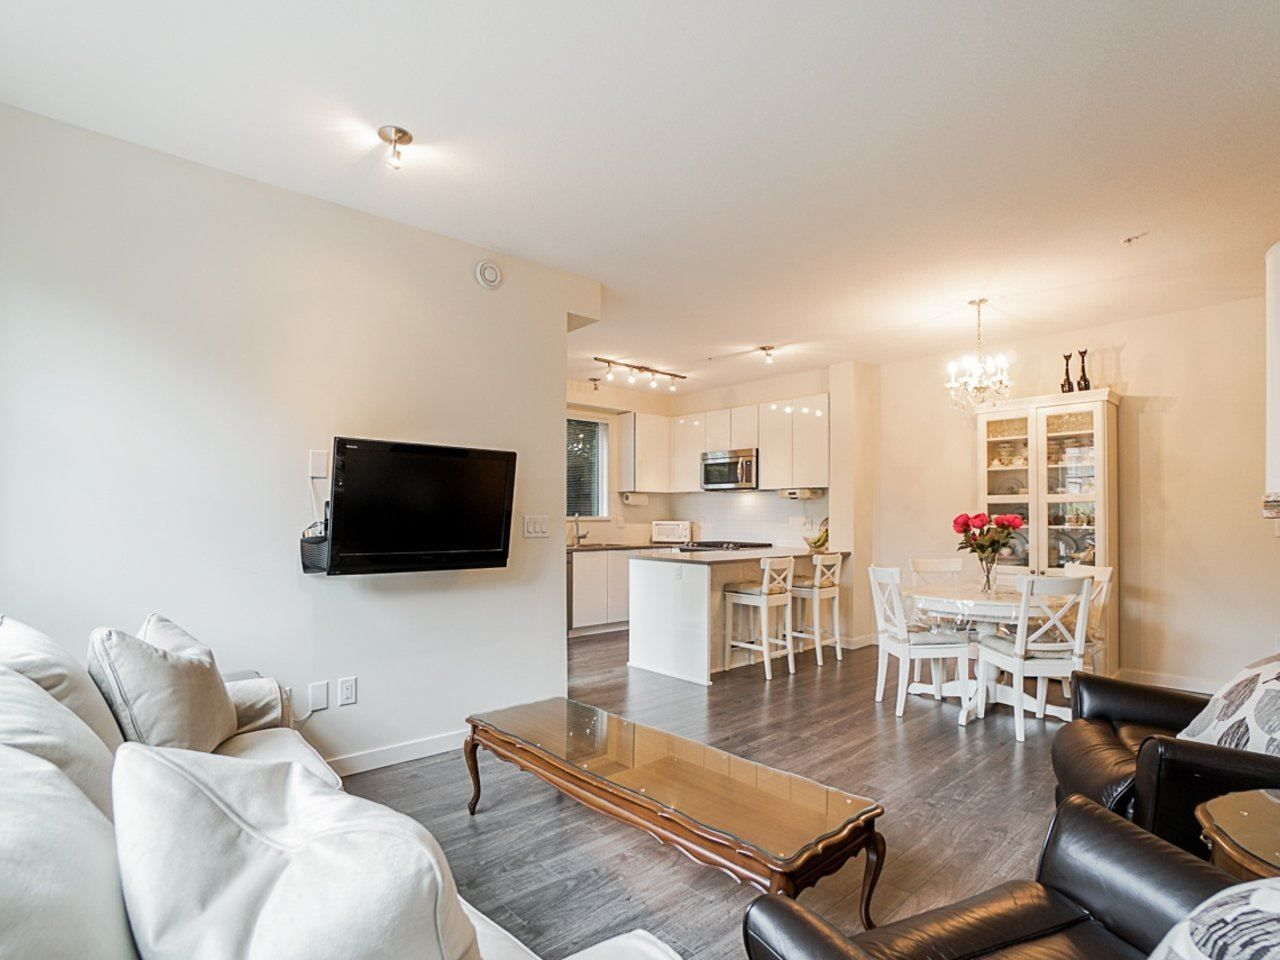 Photo 9: Photos: 108 1151 WINDSOR Mews in Coquitlam: New Horizons Condo for sale : MLS®# R2500299